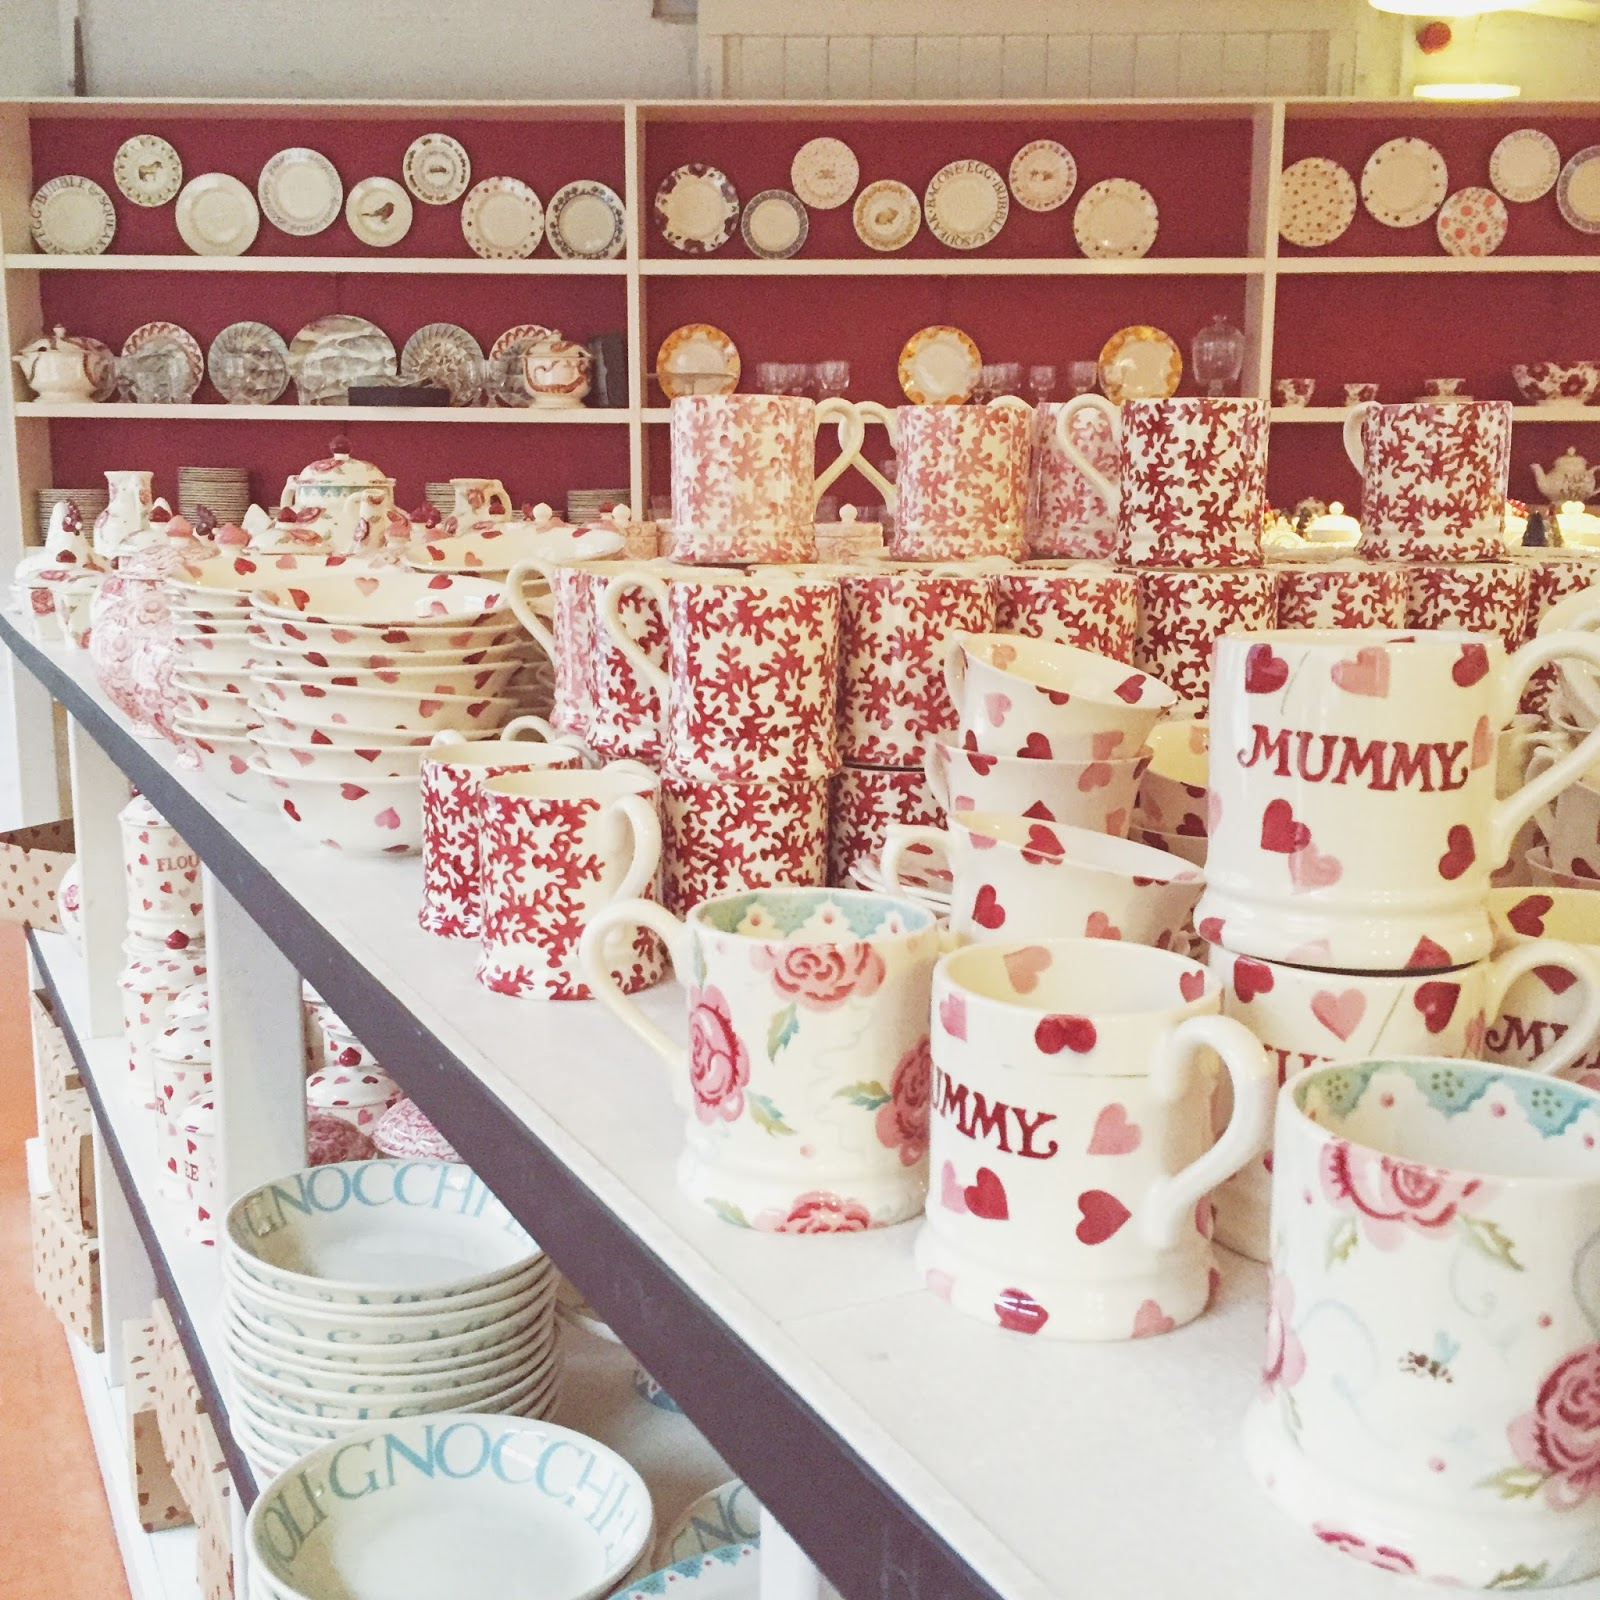 Emma Bridgewater, Factory, Stoke-On-Trent, Potteries, Mugs, Seconds, Pretty,